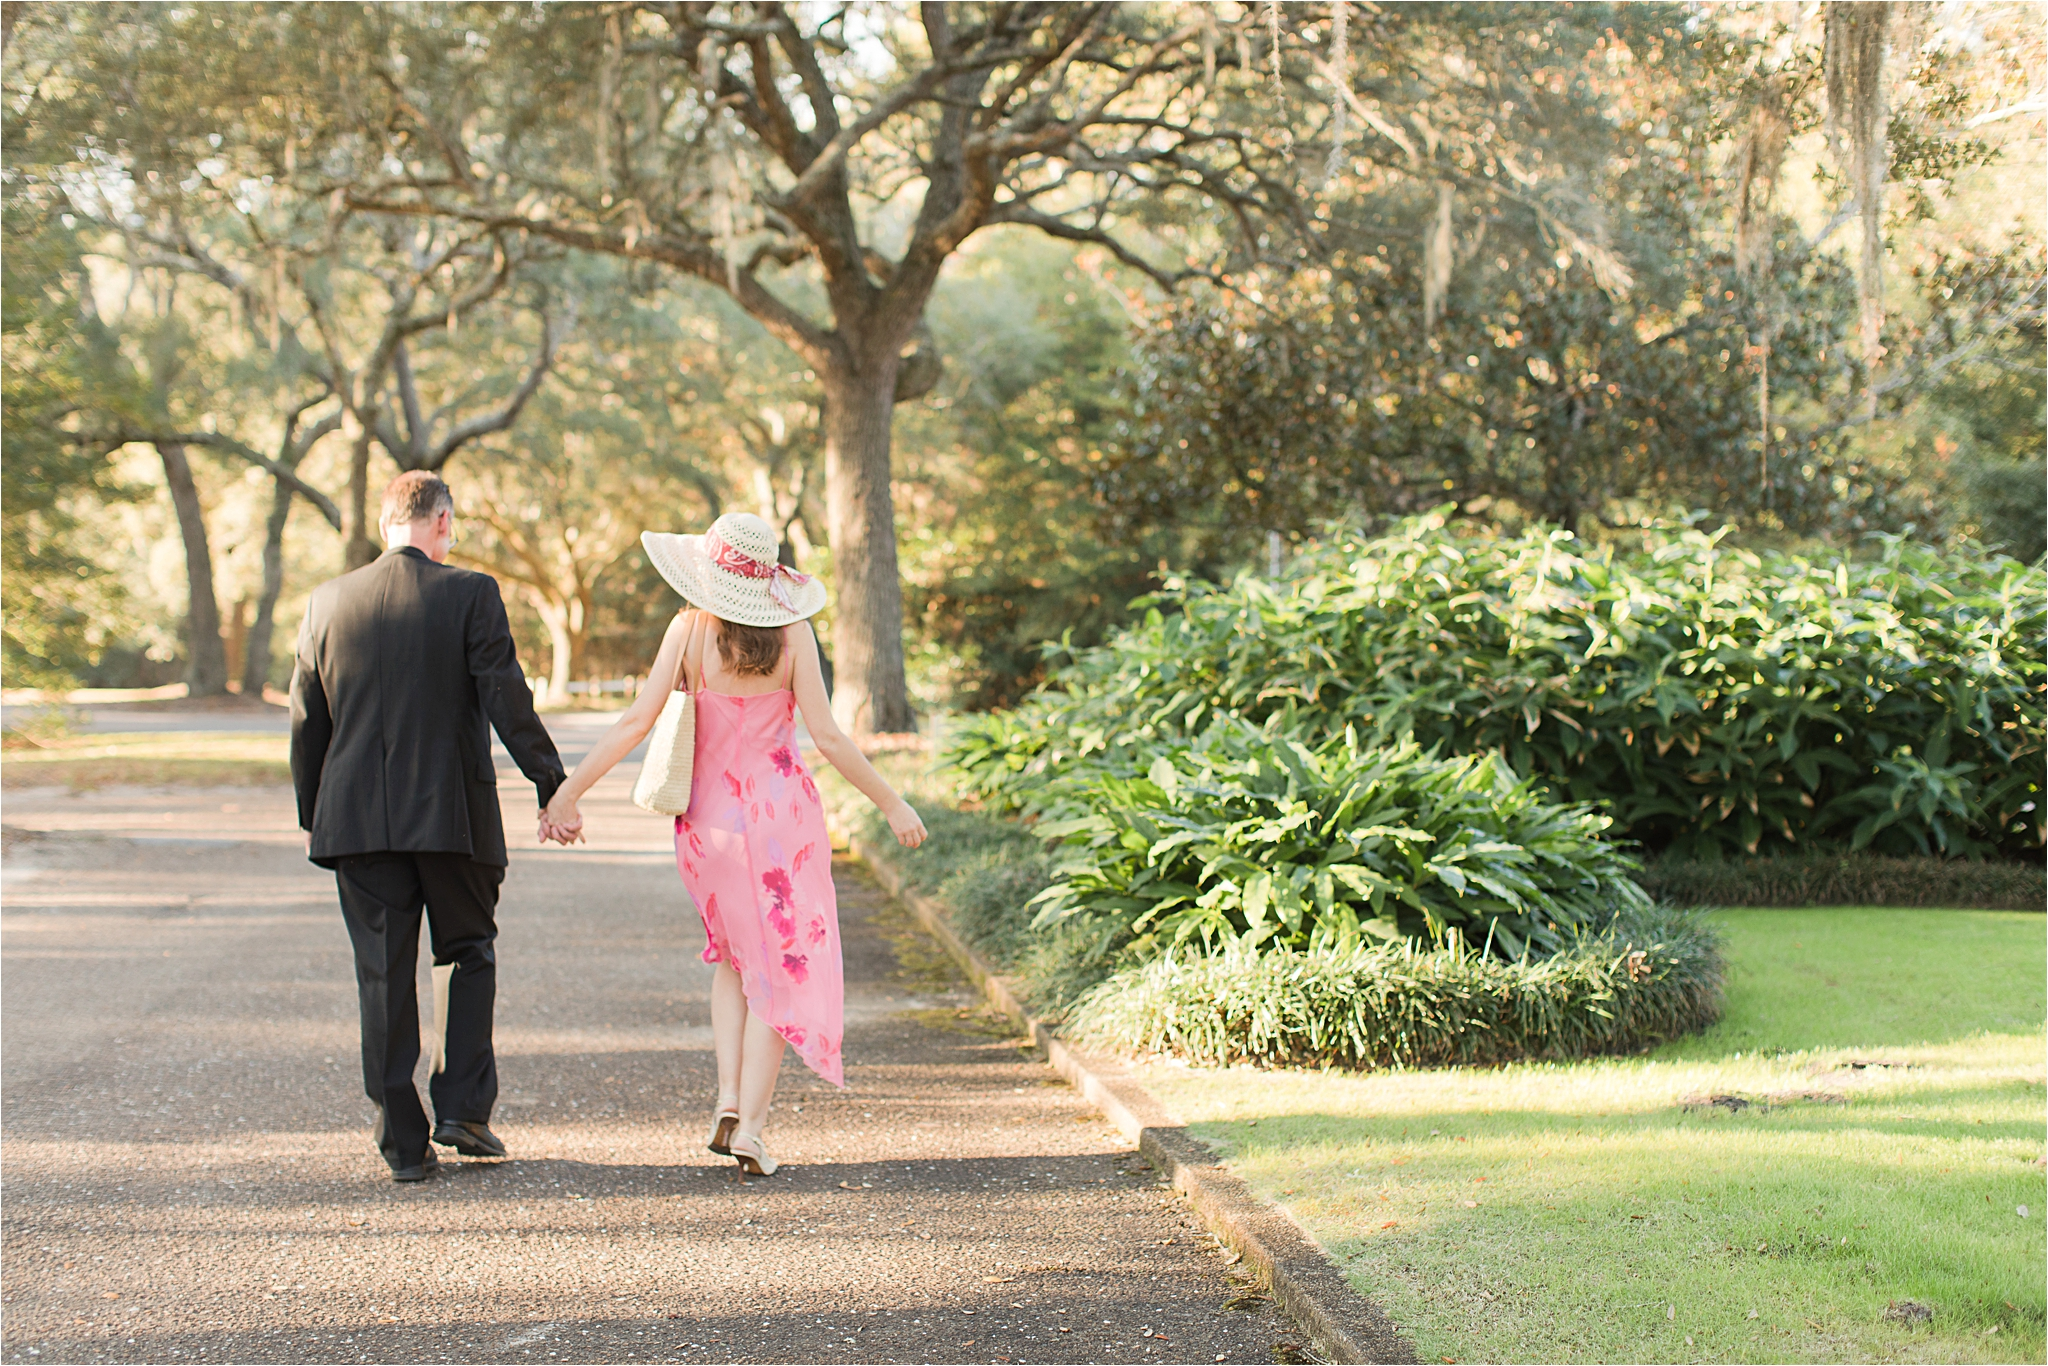 Bellingrath Gardens Engagement Session at Christmas